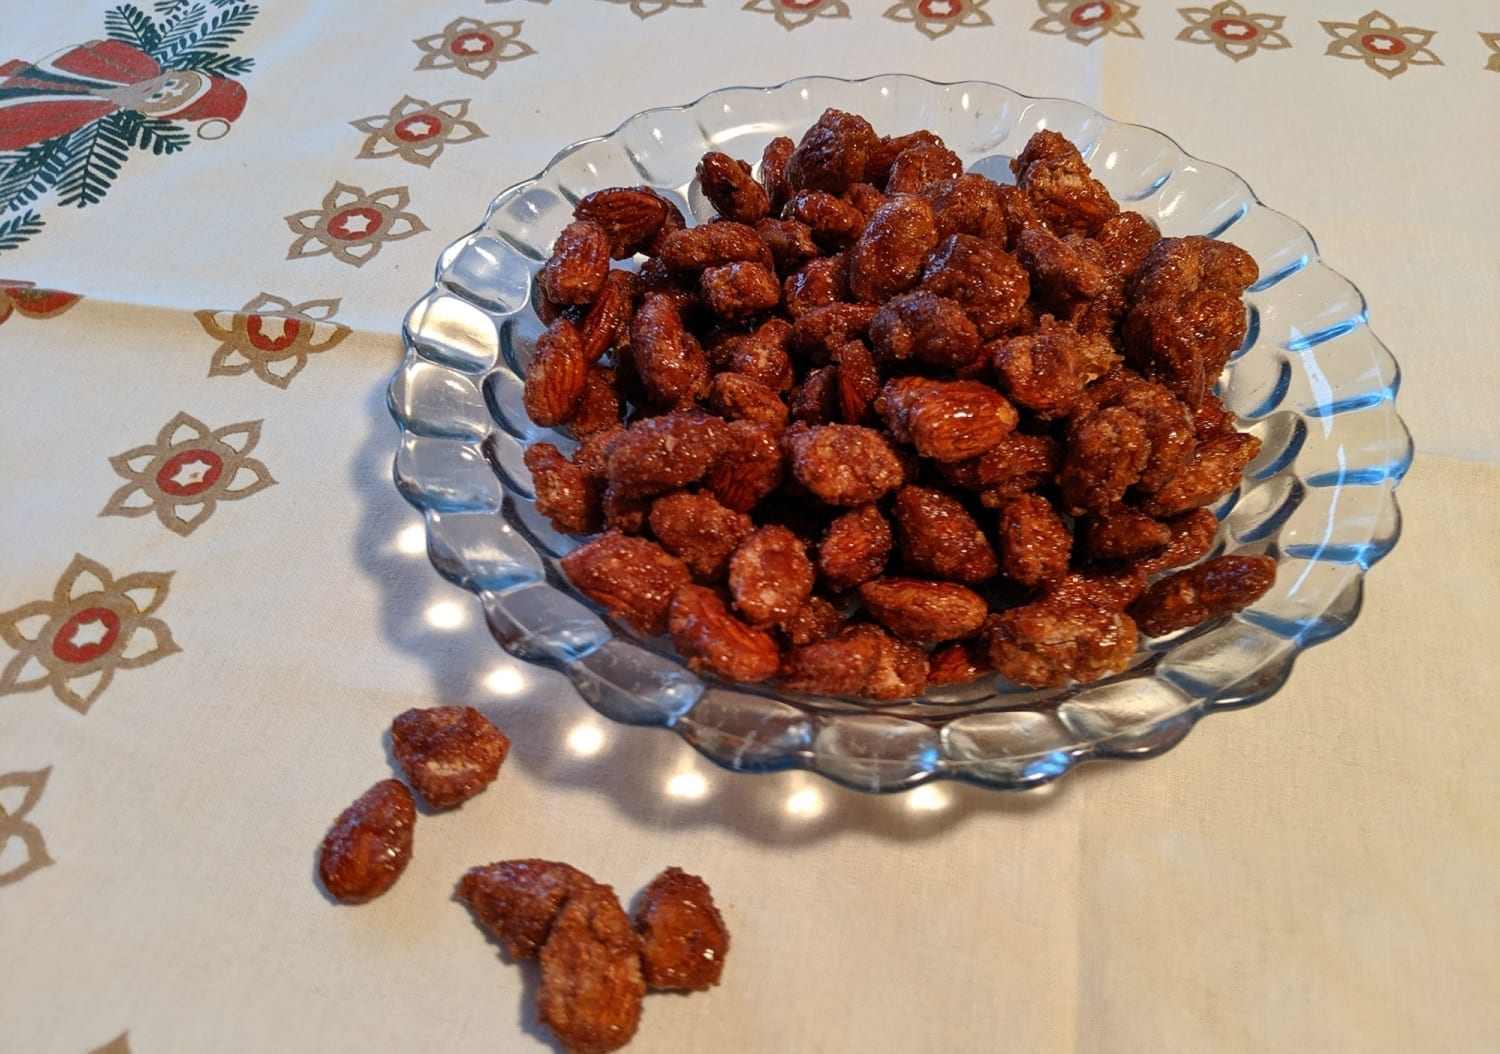 Gebrannte Mandeln- German Roasted Almonds Recipe